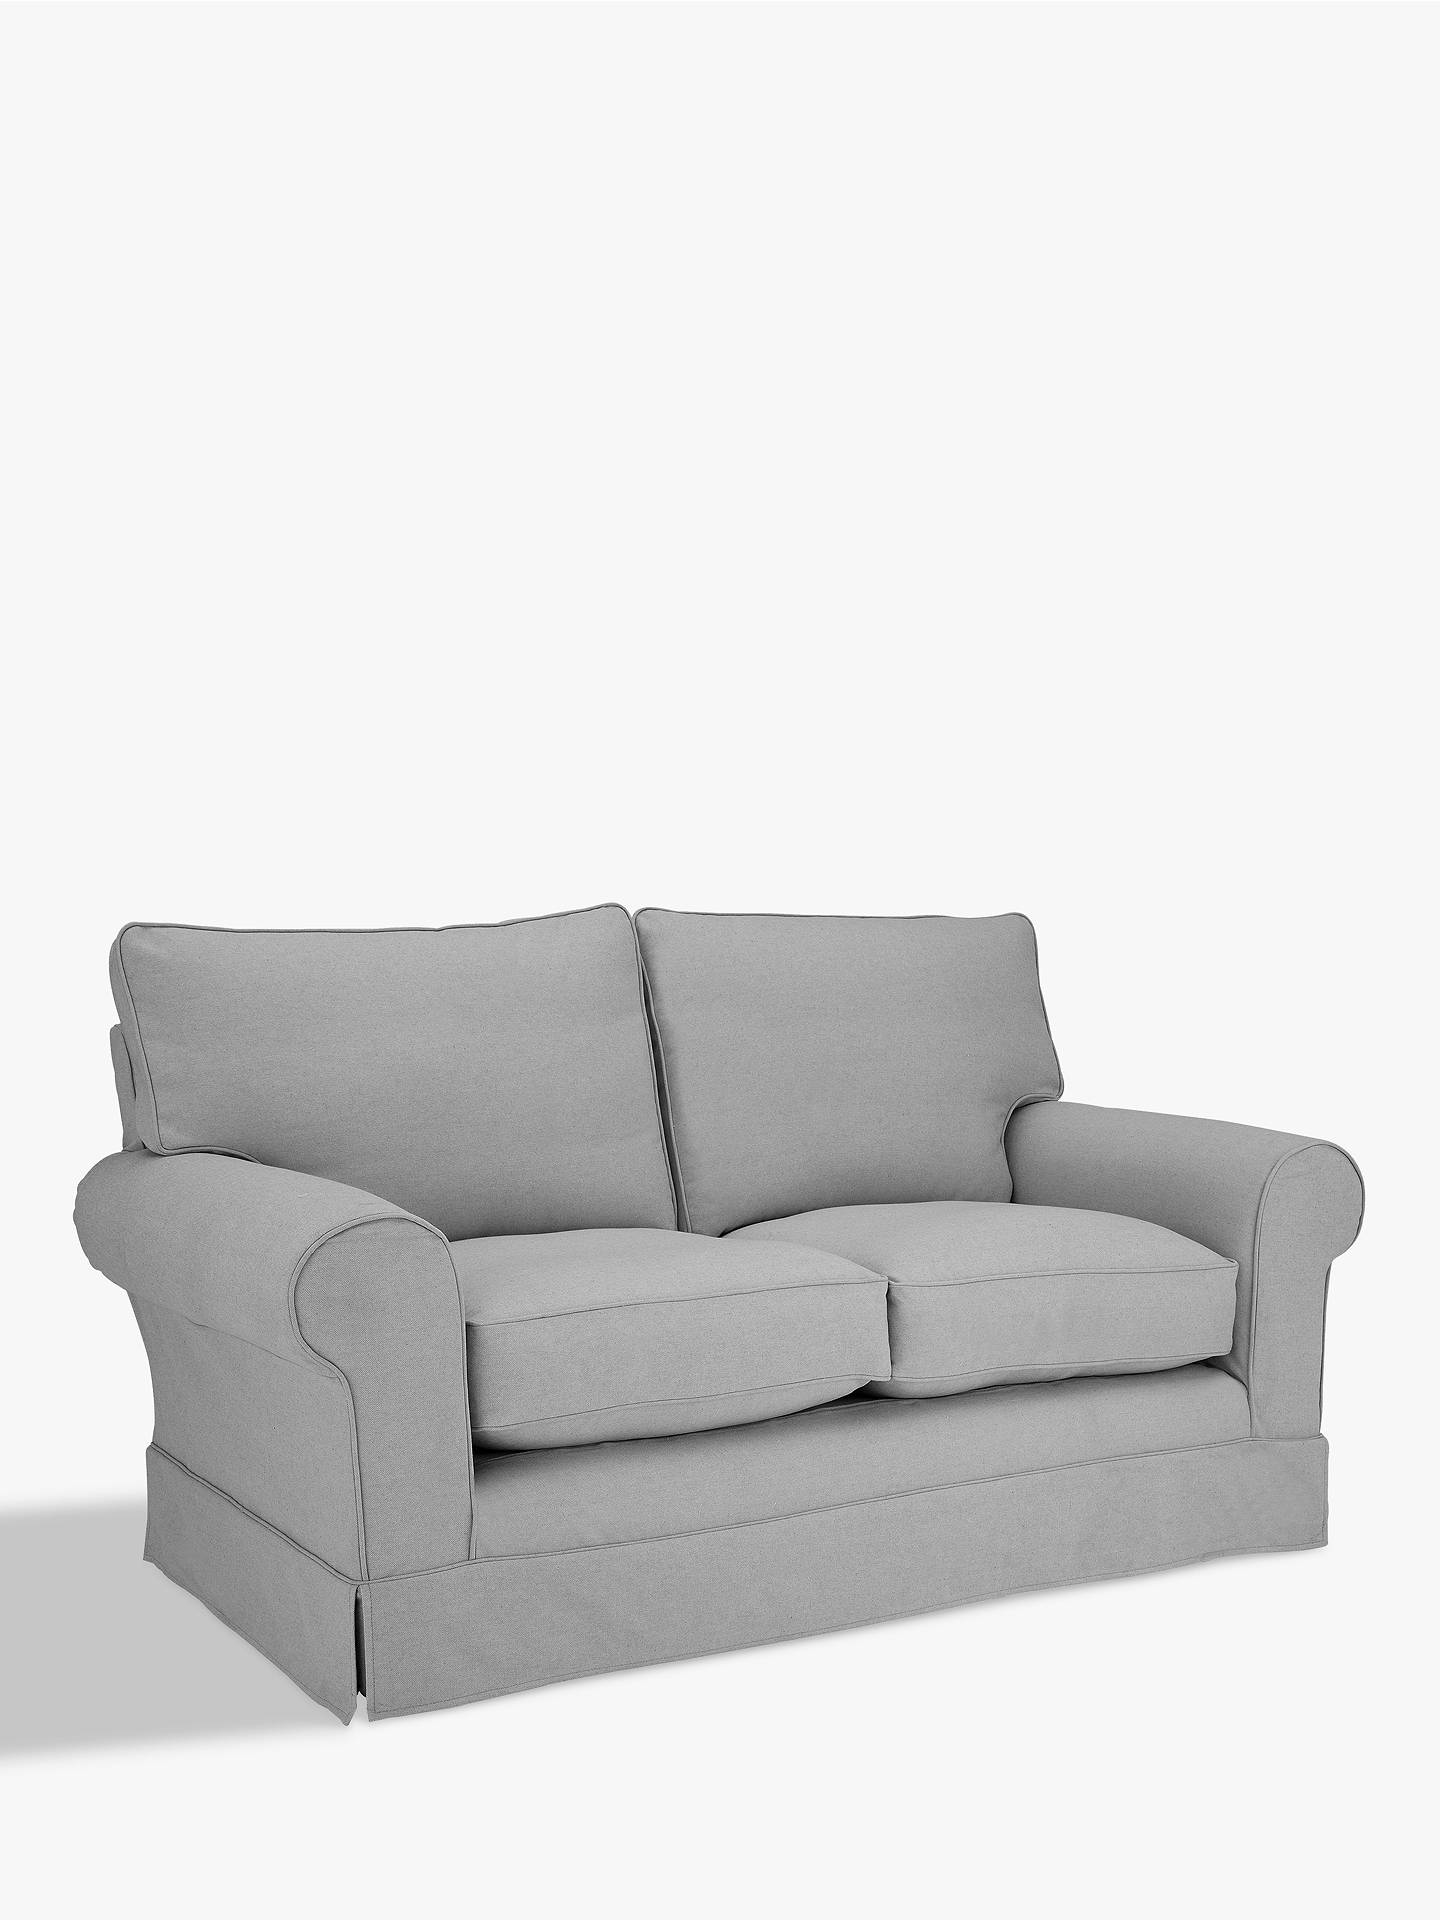 John Lewis & Partners Padstow Medium 2 Seater Fixed Cover Sofa